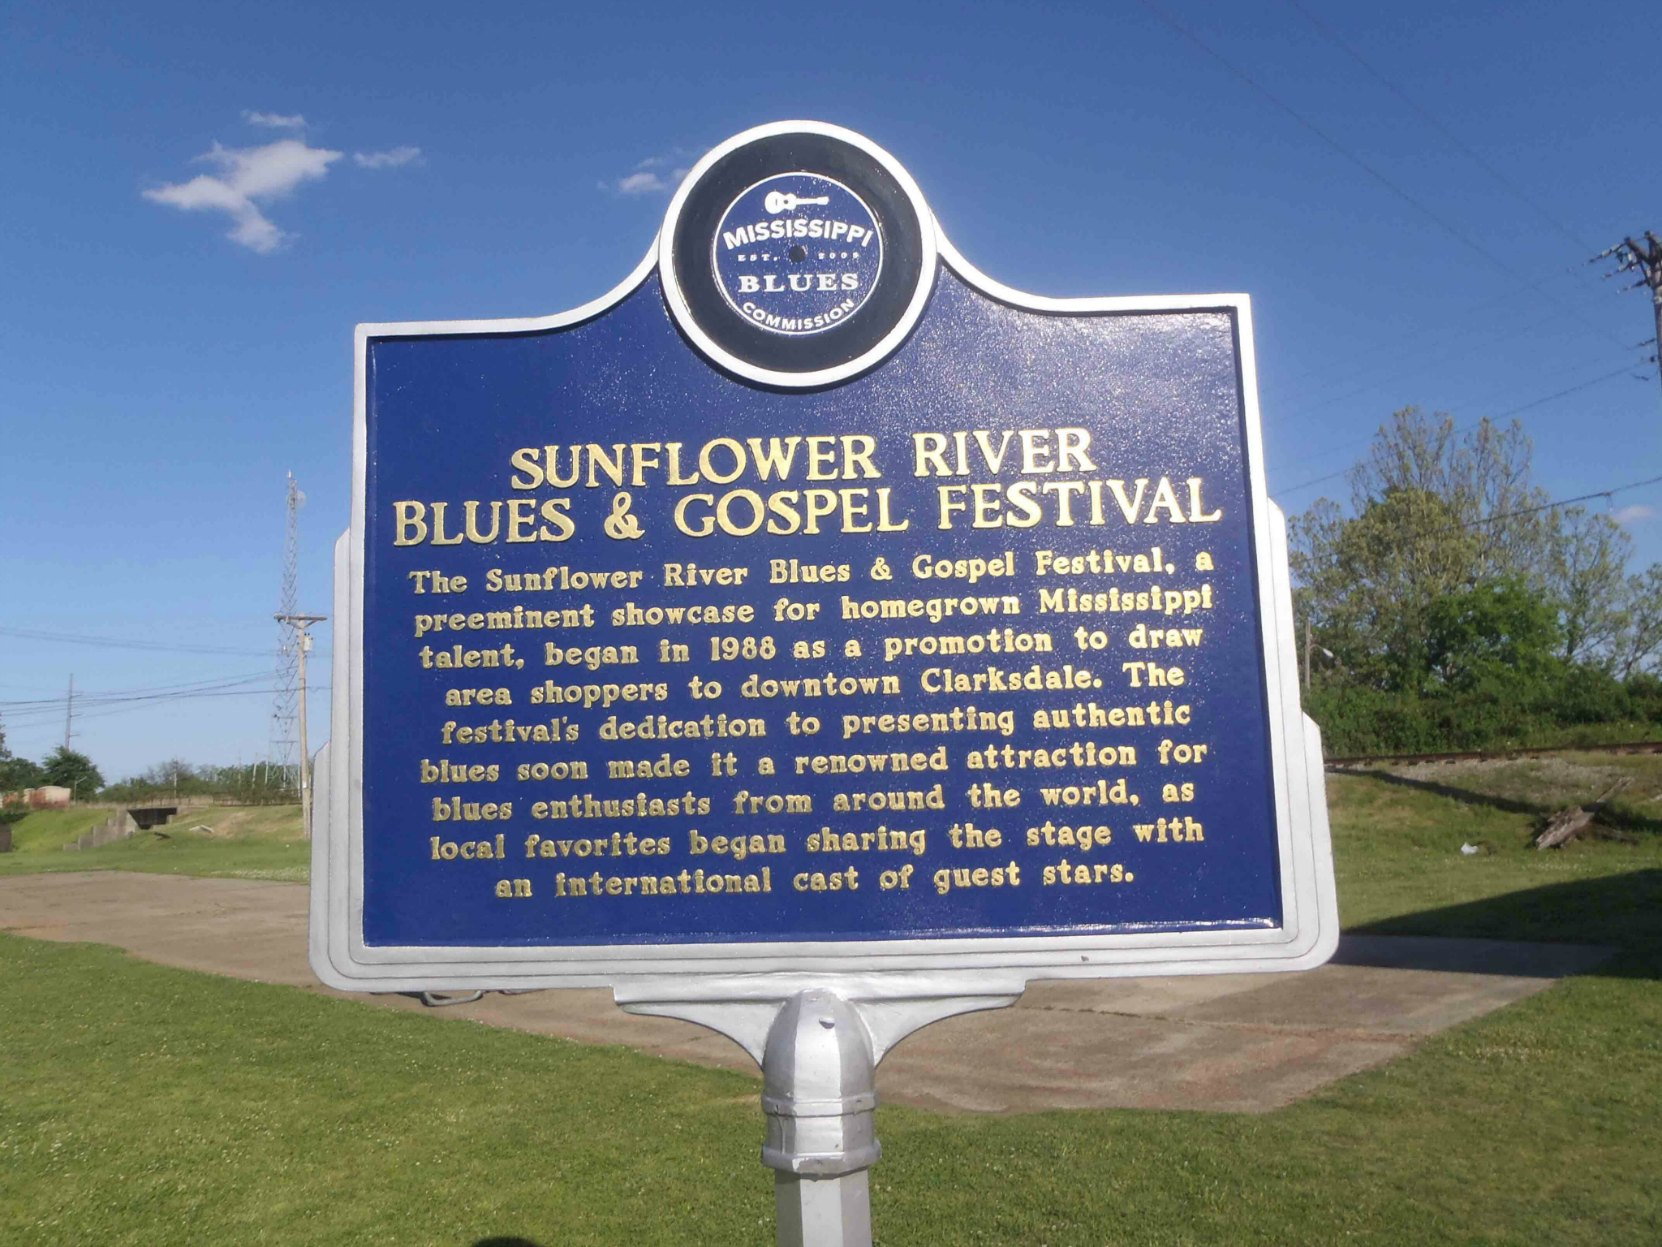 Mississippi Blues Trail marker for Sunflower River Blues & Gospel Festival, Clarksdale, Mississippi